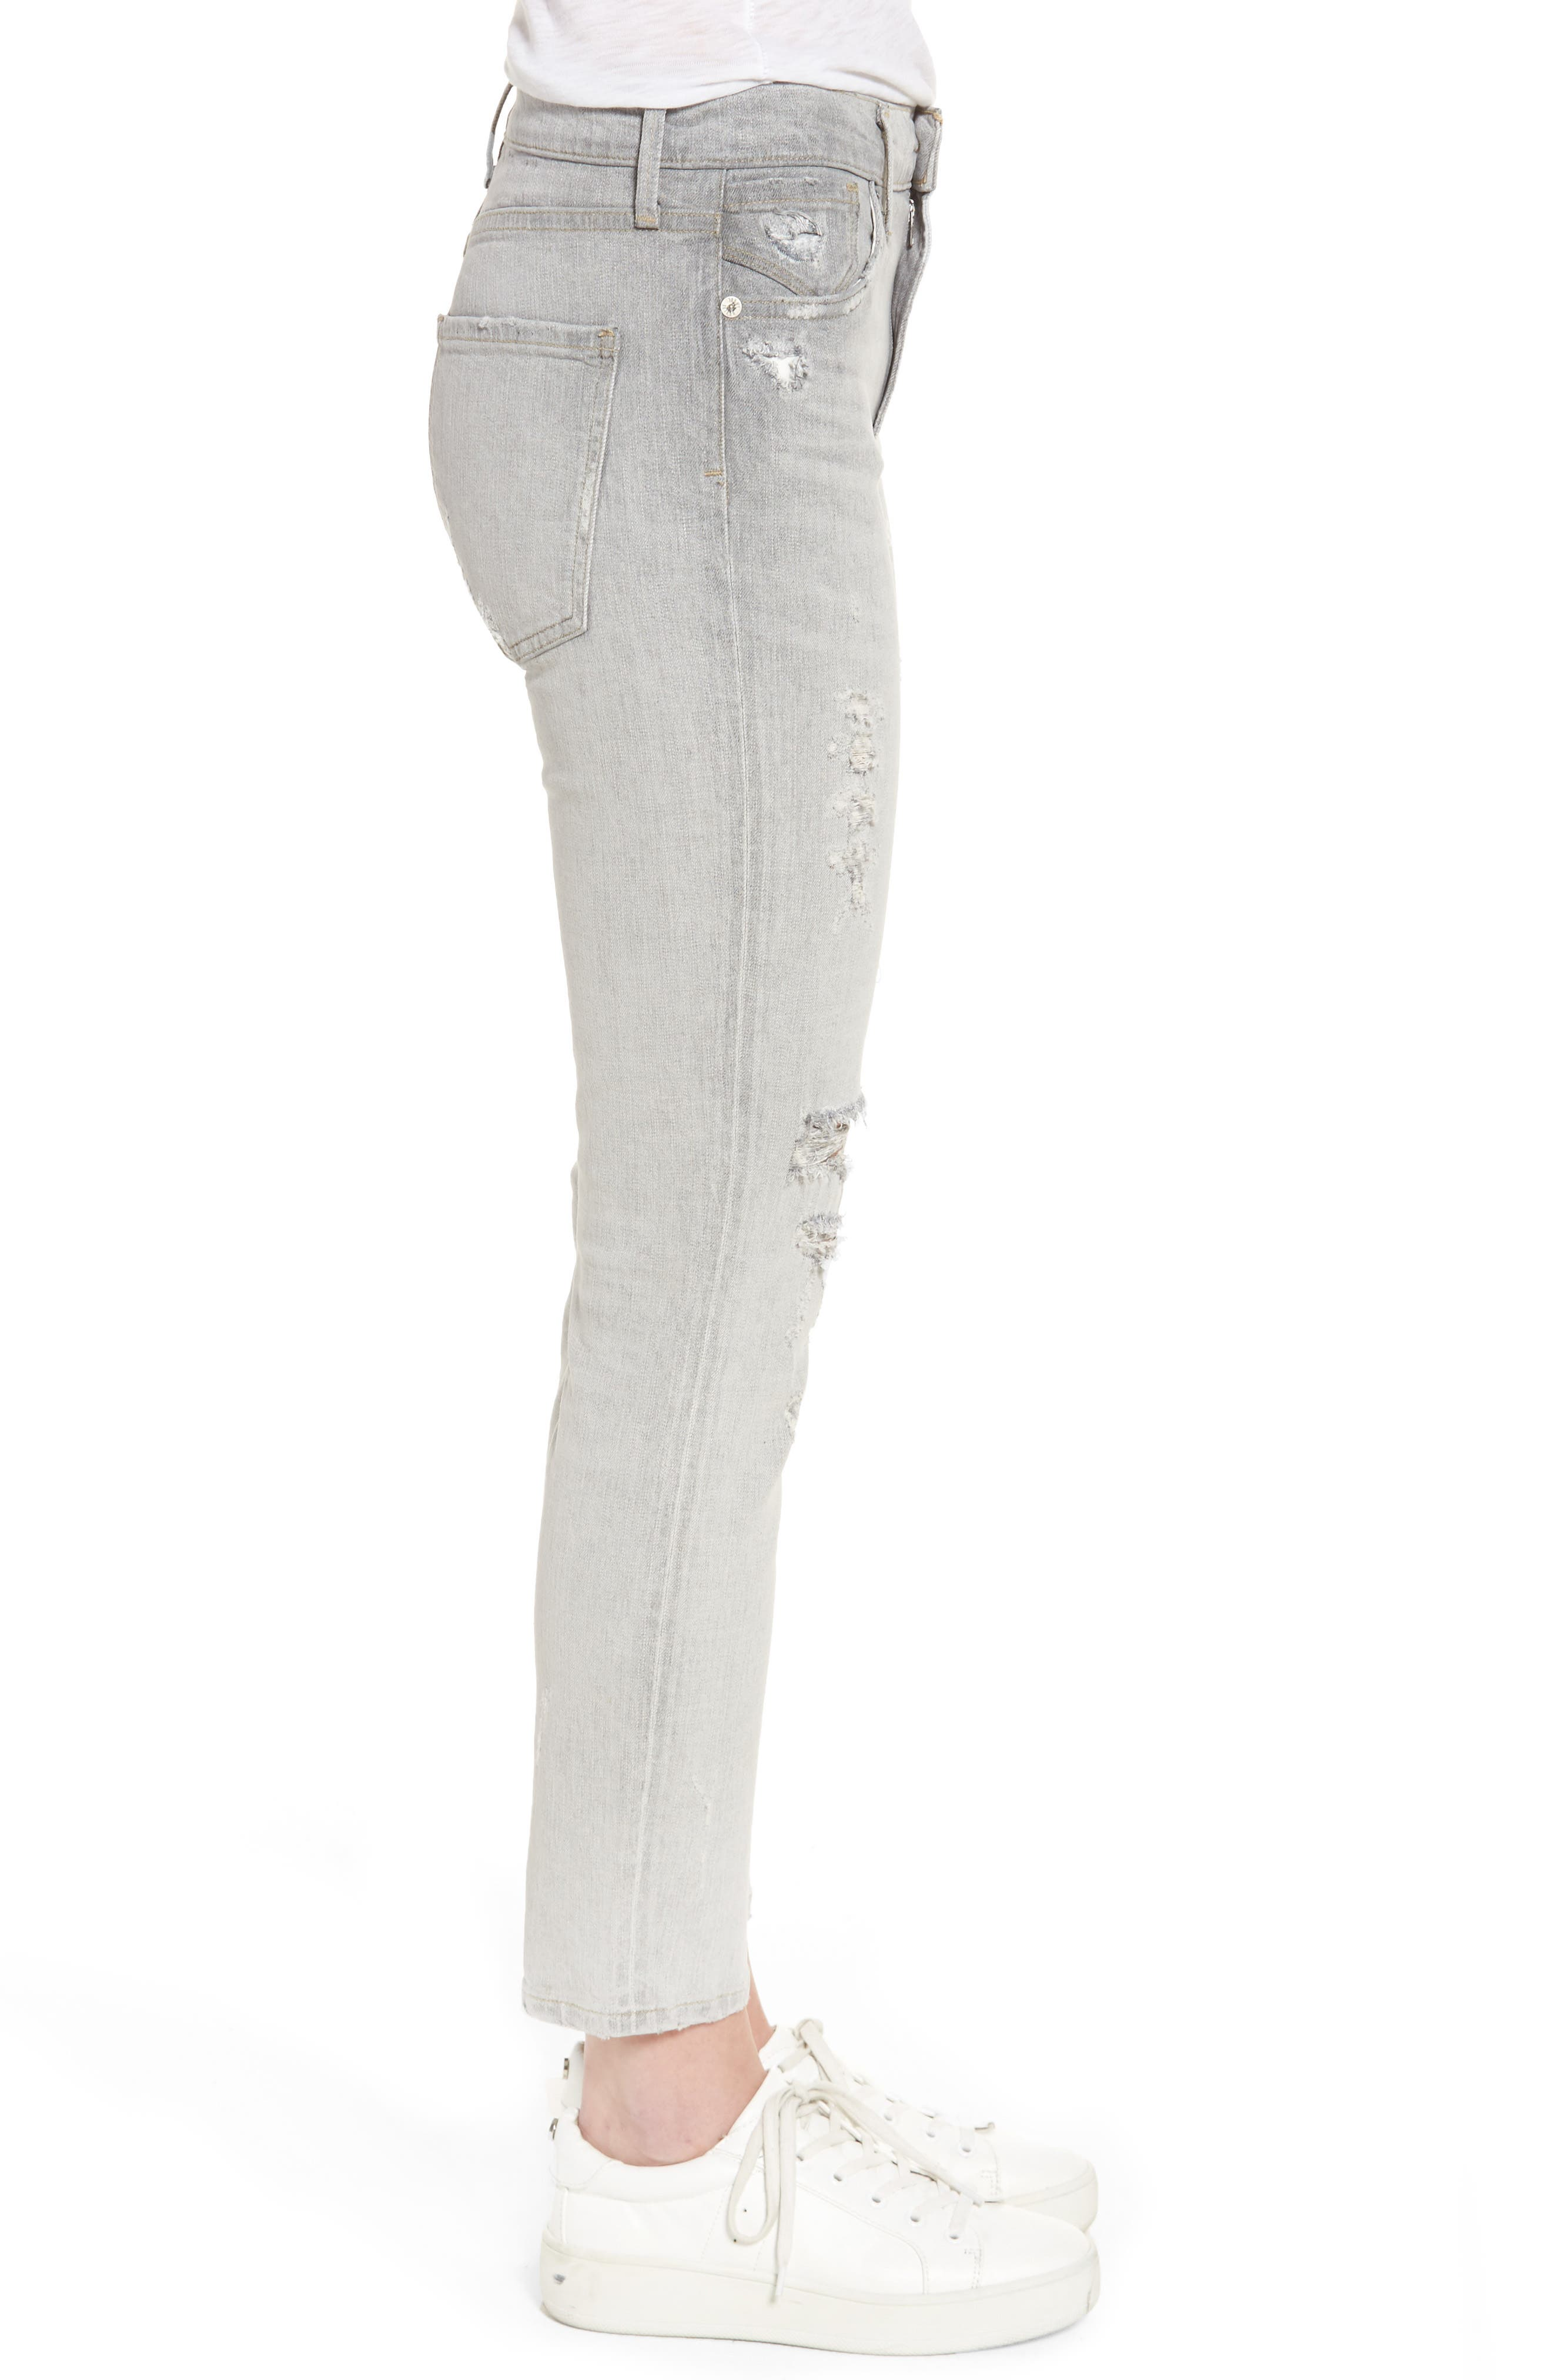 Sophie High Waist Skinny Jeans,                             Alternate thumbnail 3, color,                             059